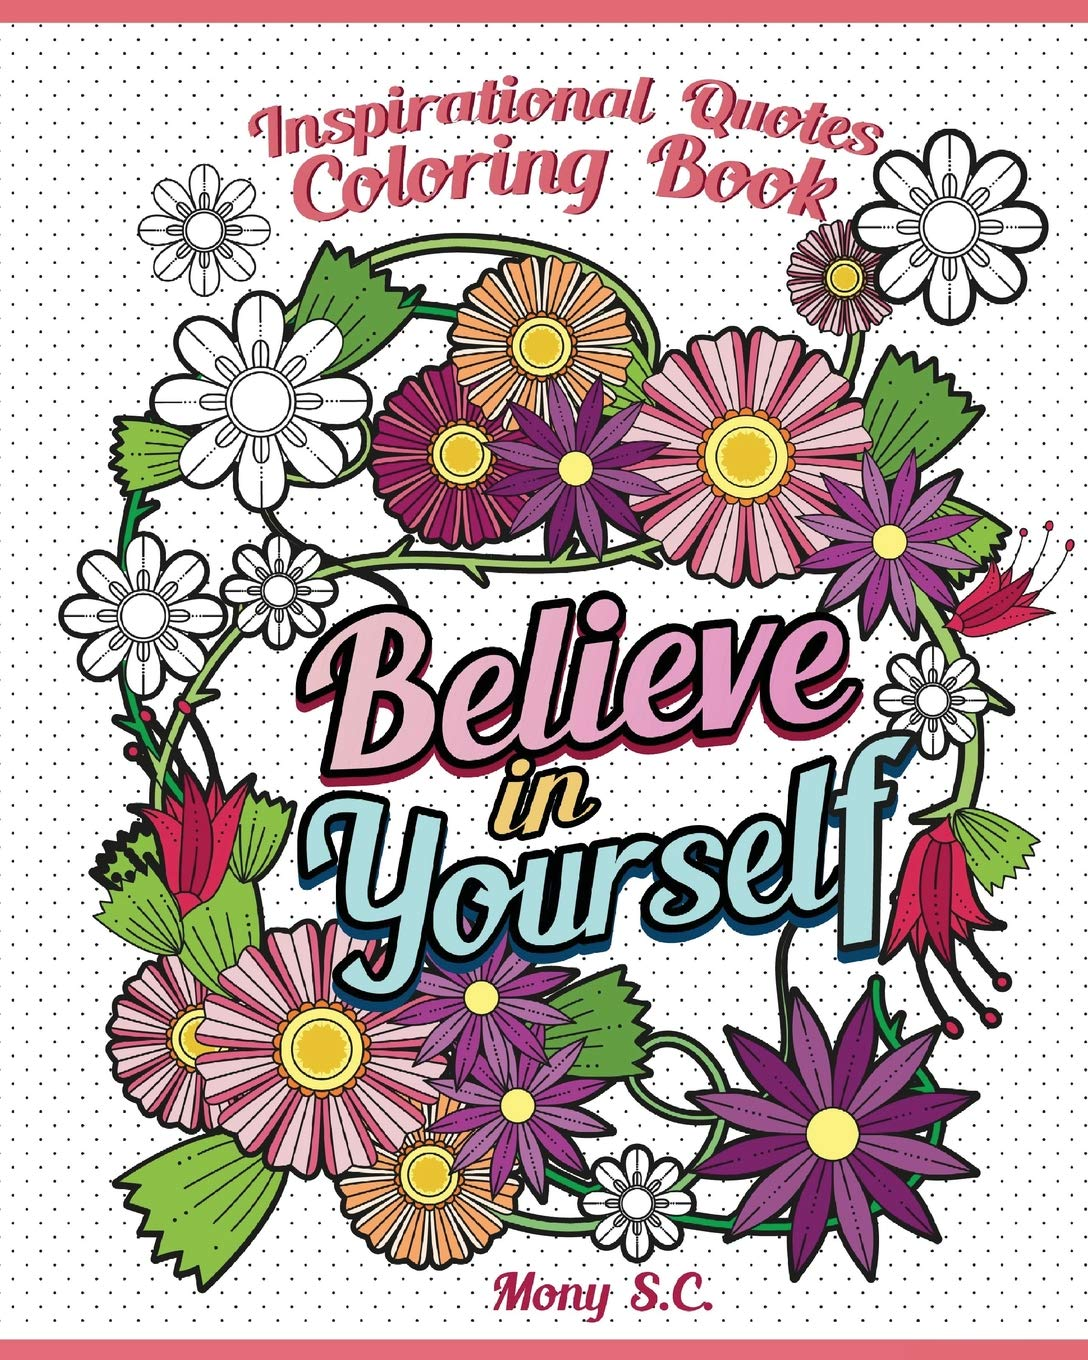 believe in yourself inspirational quotes coloring books positive and uplifting adult coloring books to inspire you inspiration quotes coloring